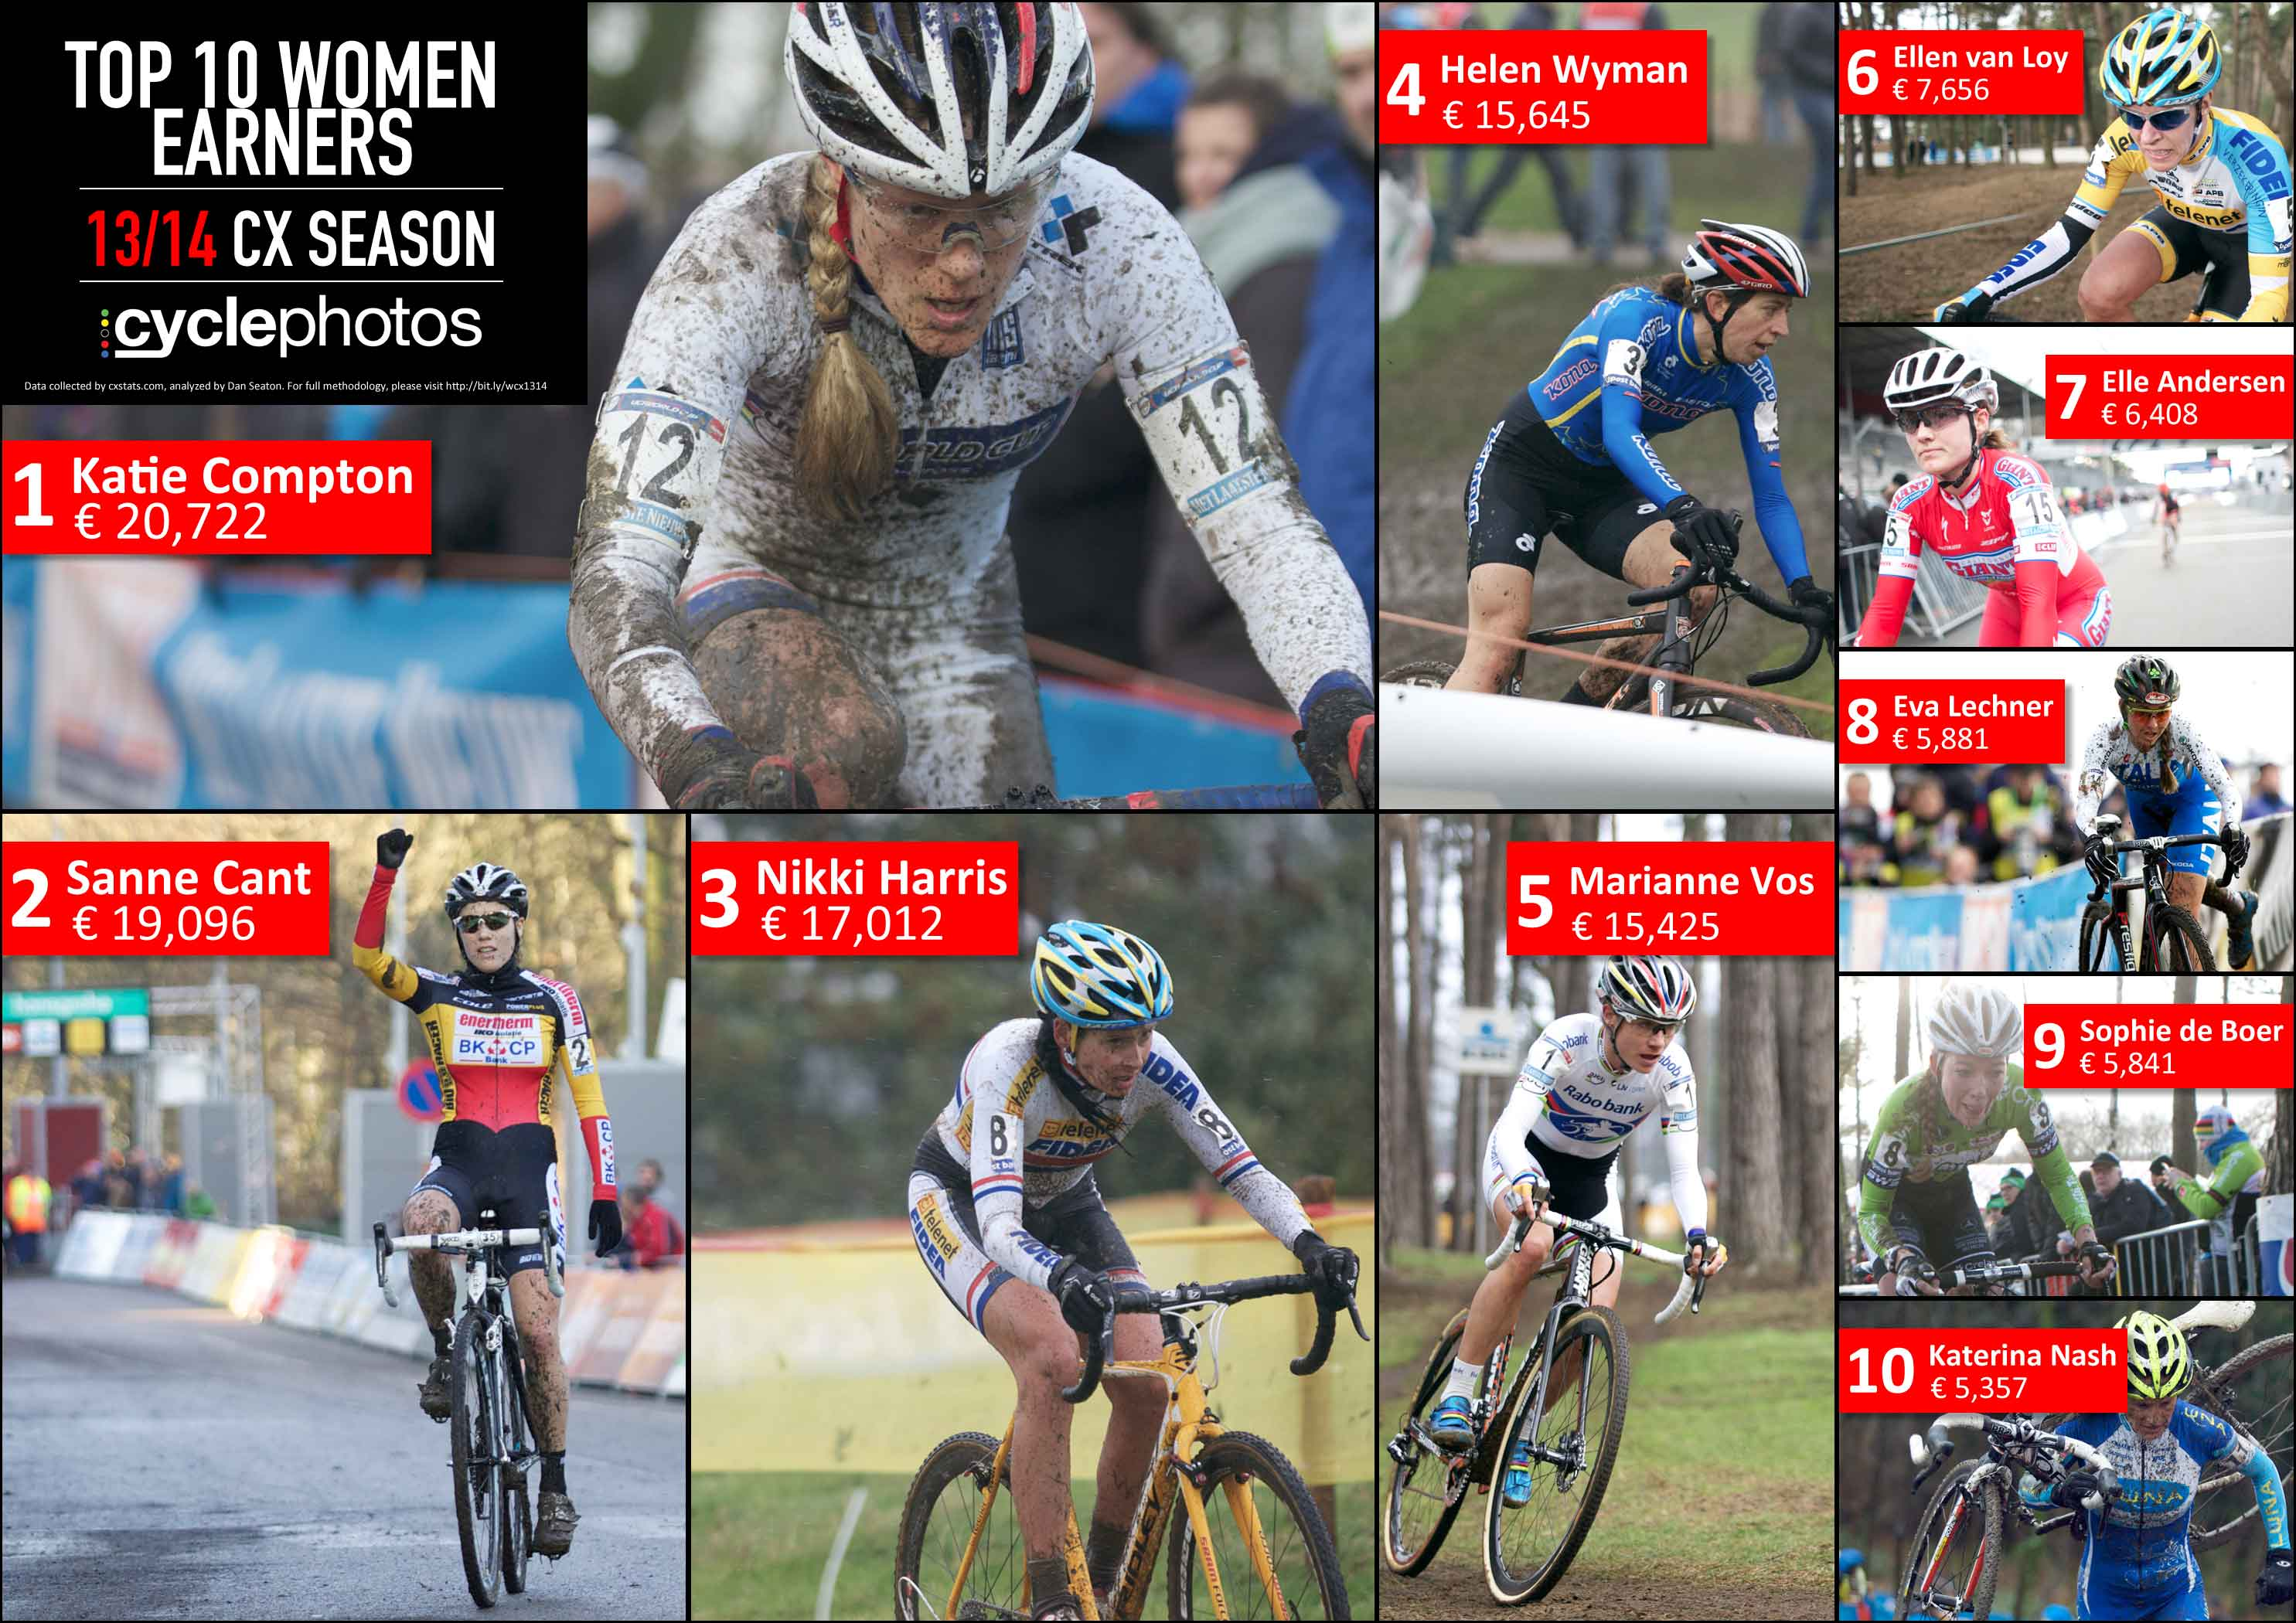 Top 10 women earners in the 2013/2014 cyclocross season